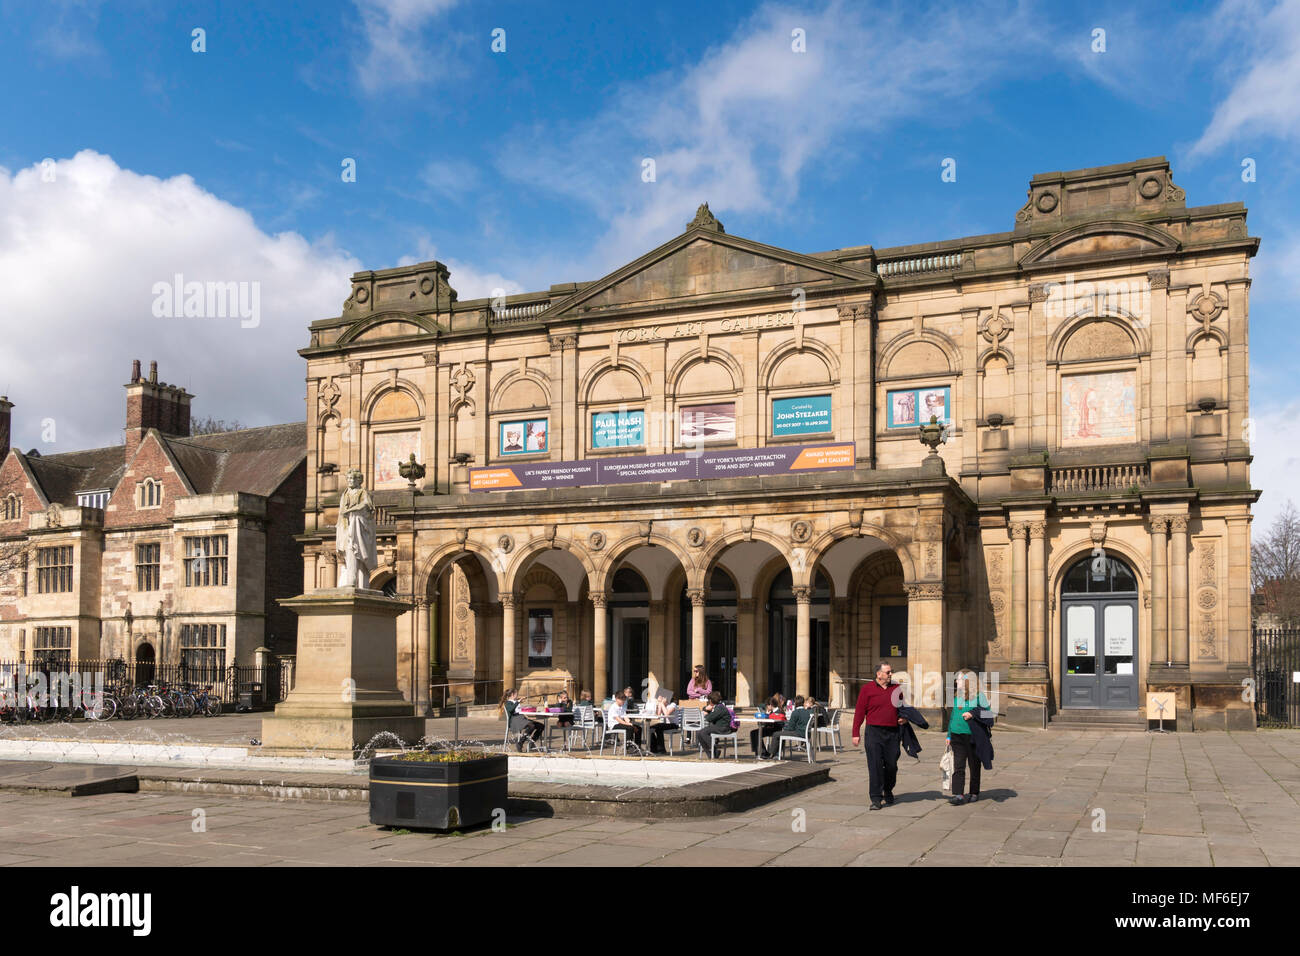 A couple leave York Art Gallery while a party of schoolchildren sit near the entrance, Exhibition Square, York, Yorkshire, England, UK - Stock Image